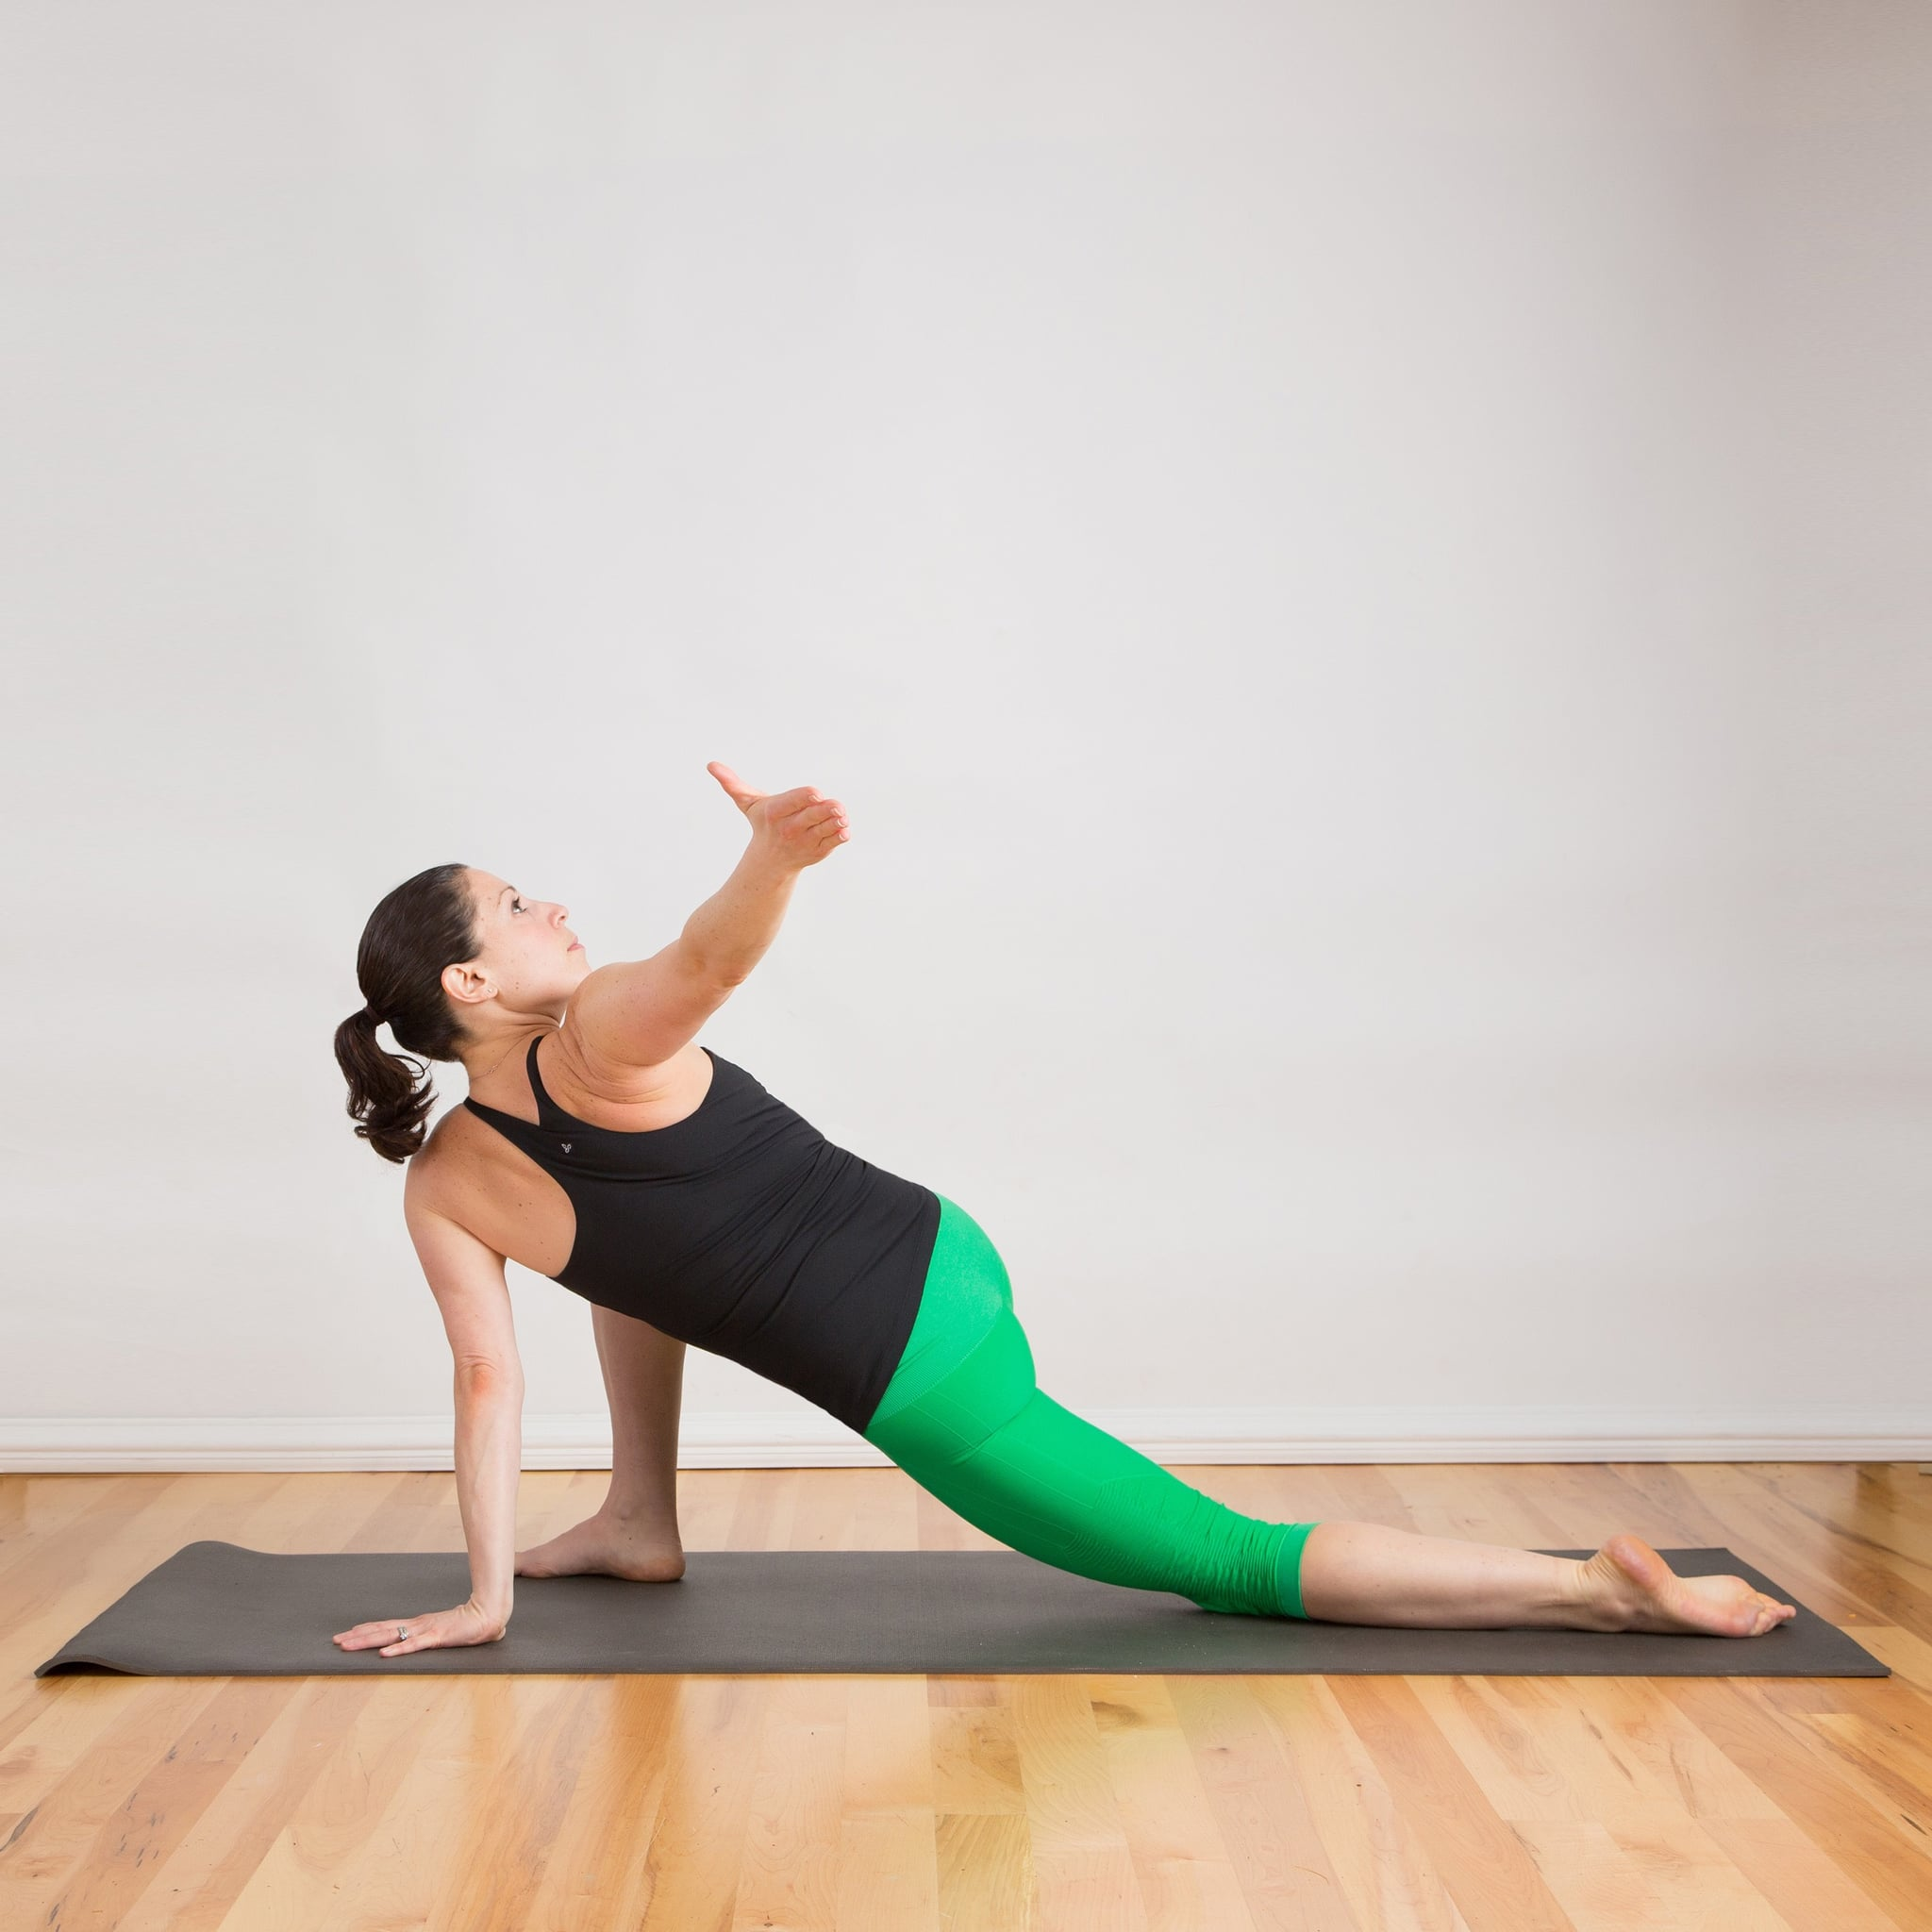 Arbeitsblatt Lunge Full Movie : Open lunge twist if you lift weights this yoga sequence